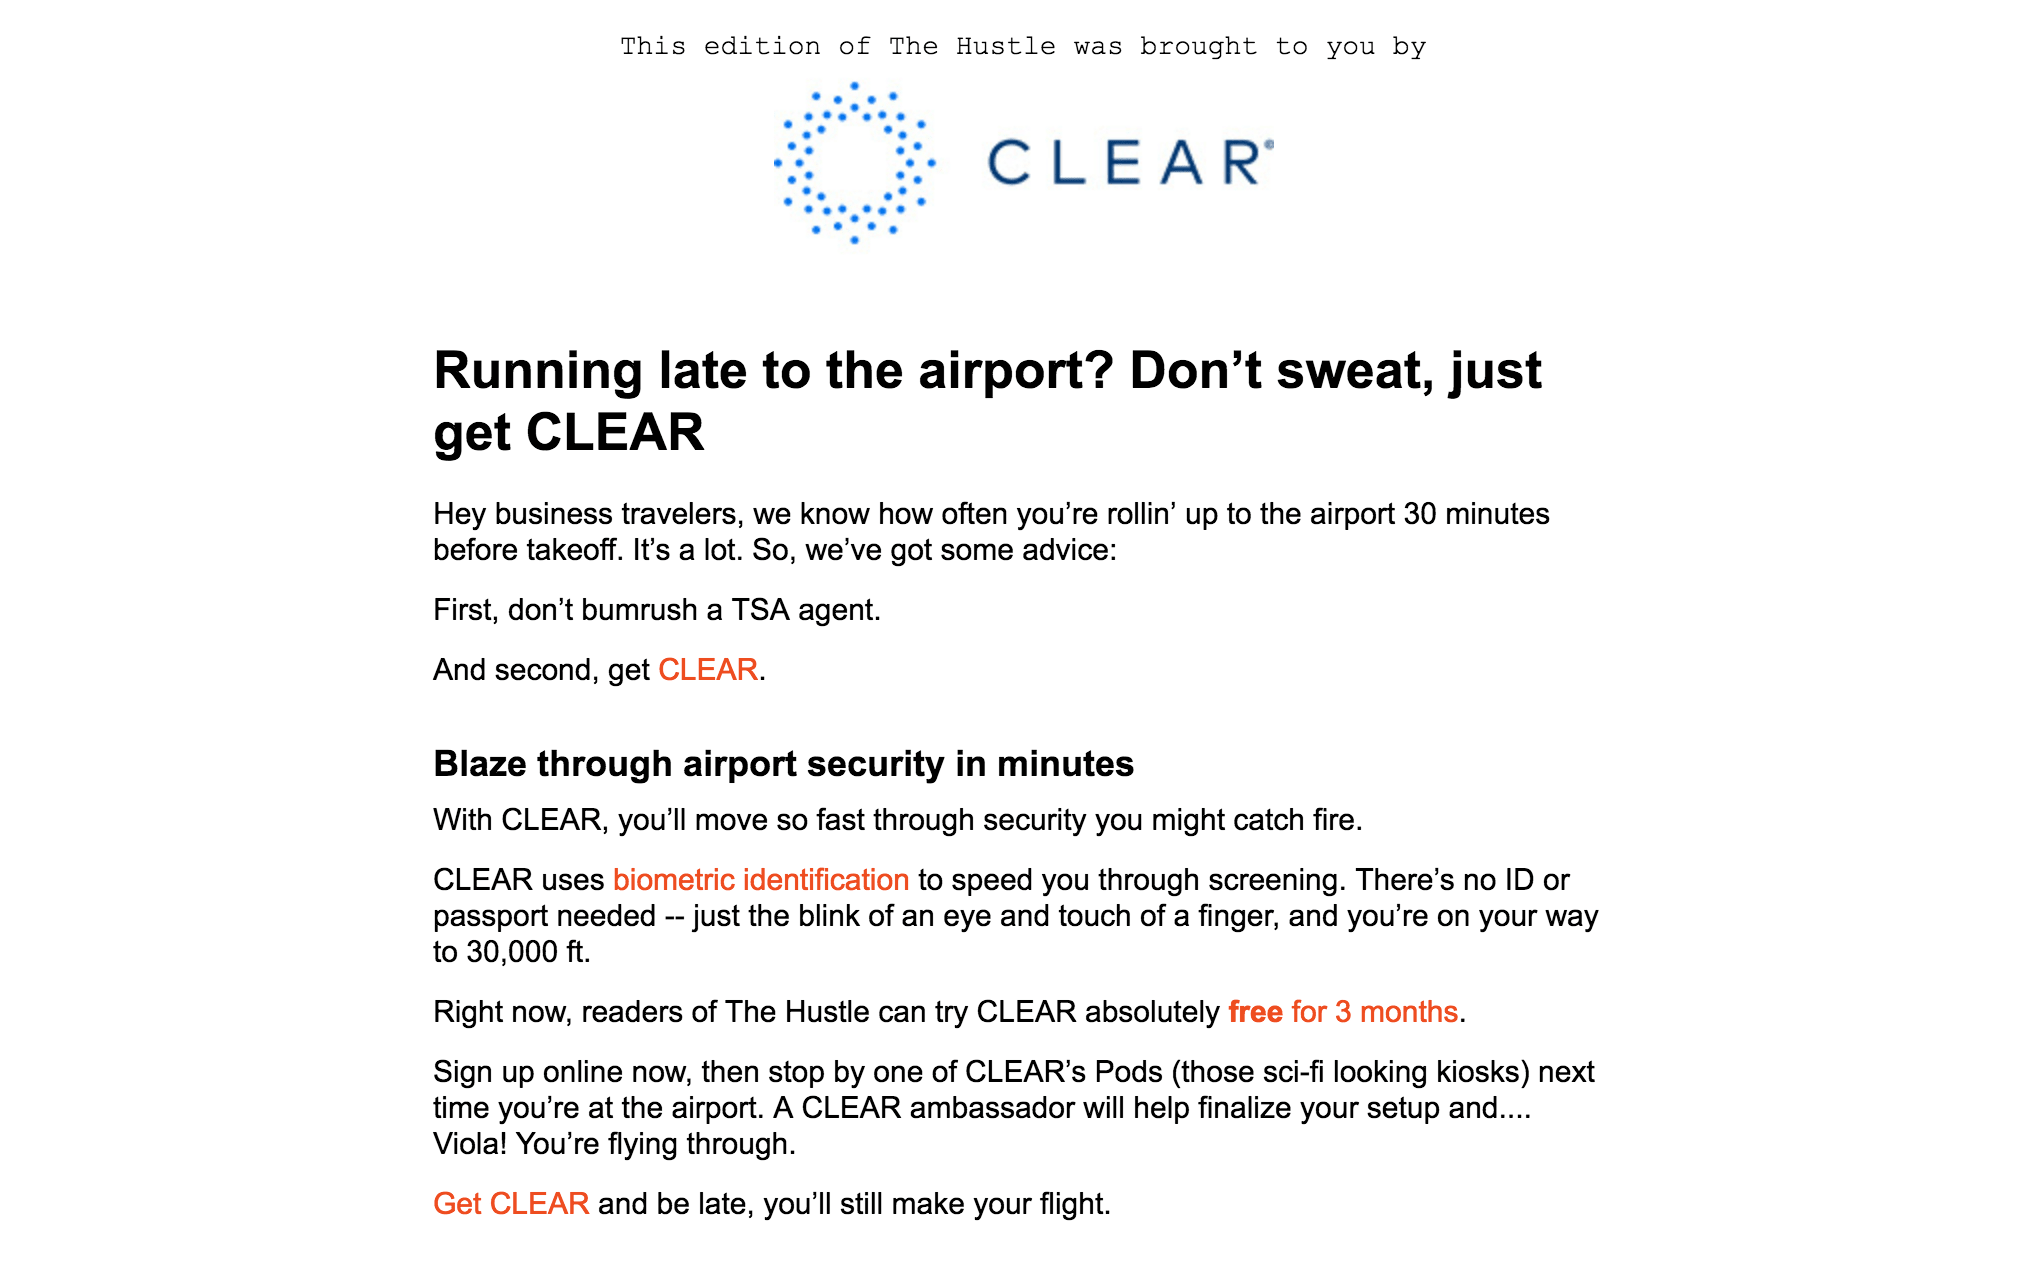 CLEAR's email sponsorship in The Hustle.